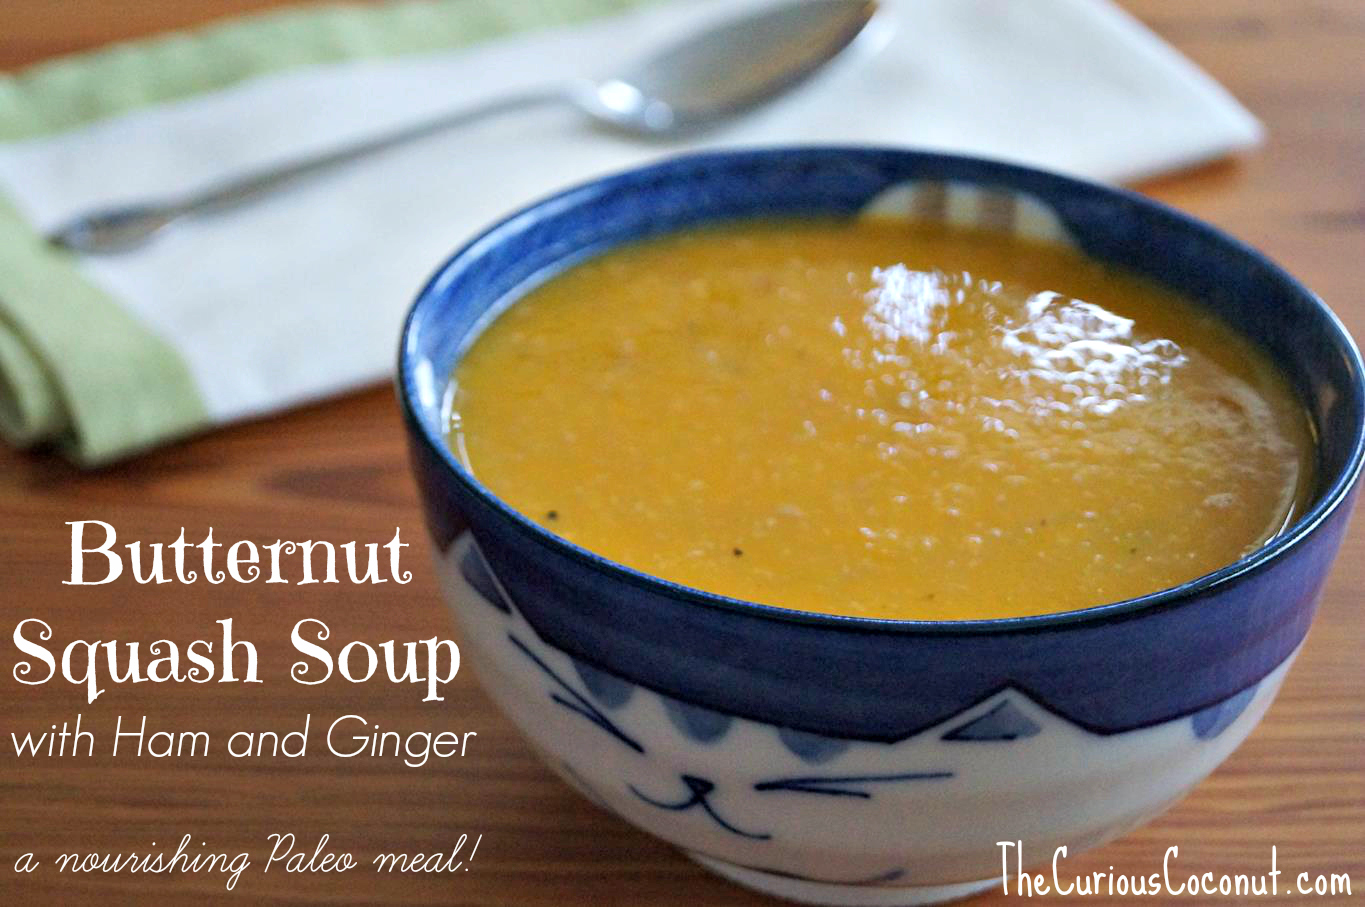 Paleo Butternut Squash Soup with Ham and Ginger